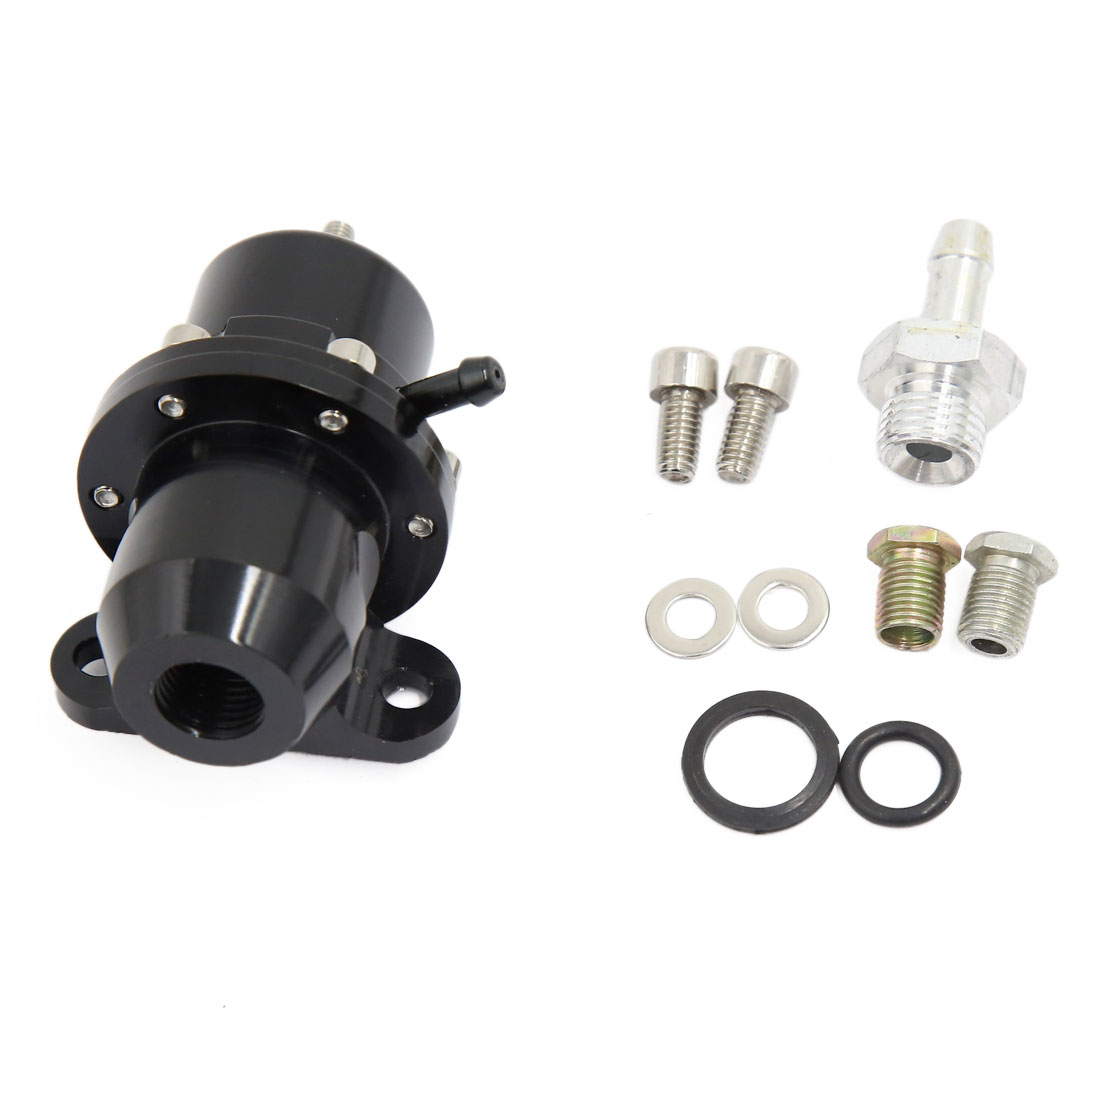 Universal Car Straight 1:1 Ratio Adjustable Fuel Pressure Regulator Black